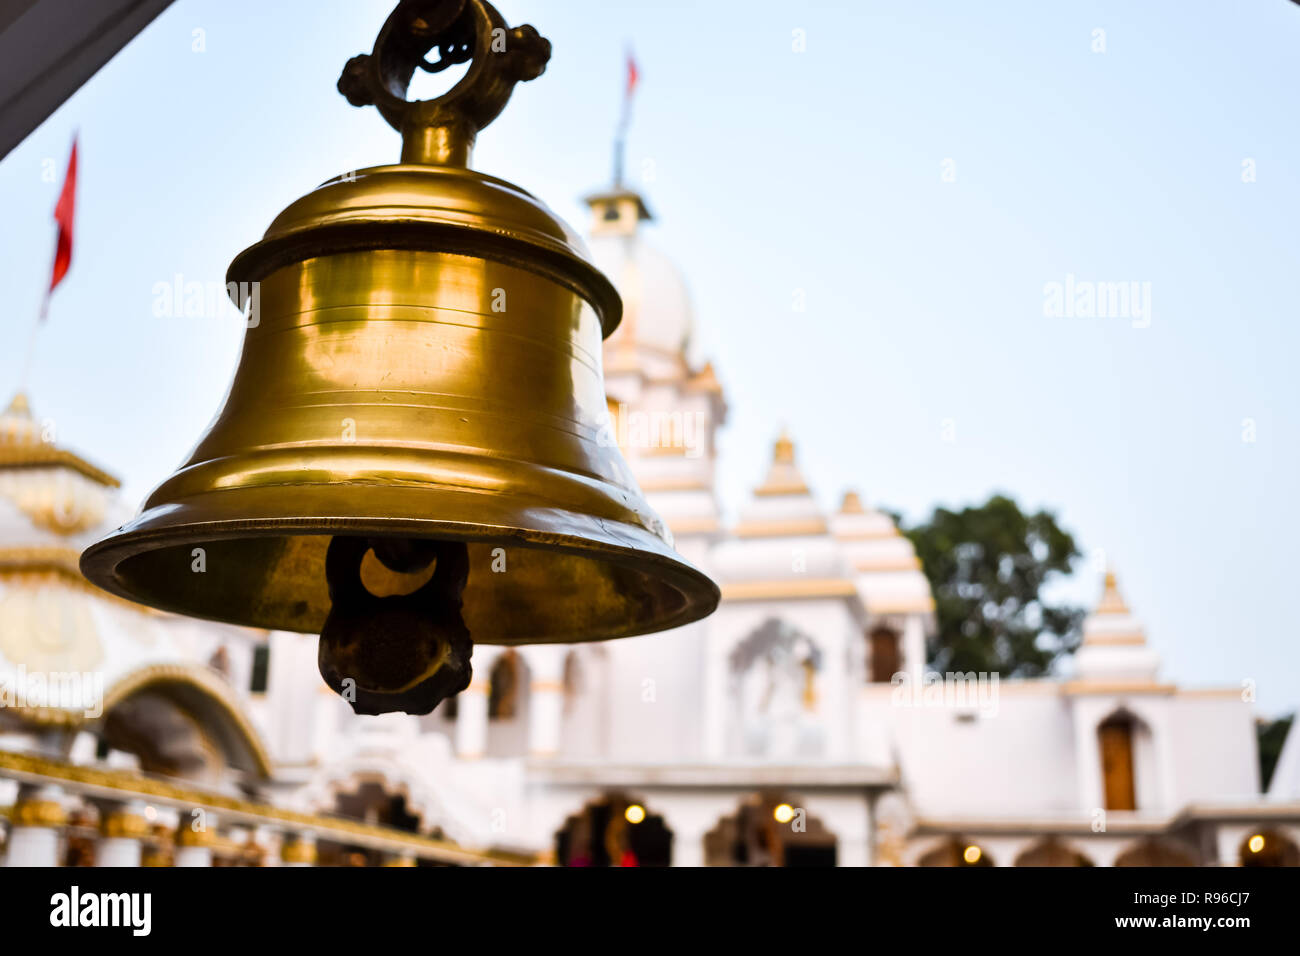 Ring bells in temple. Golden metal bell isolated. Big brass Buddhist bell of Japanese temple. Ringing bell in temple is belief auspicious. Bangkok, Th Stock Photo